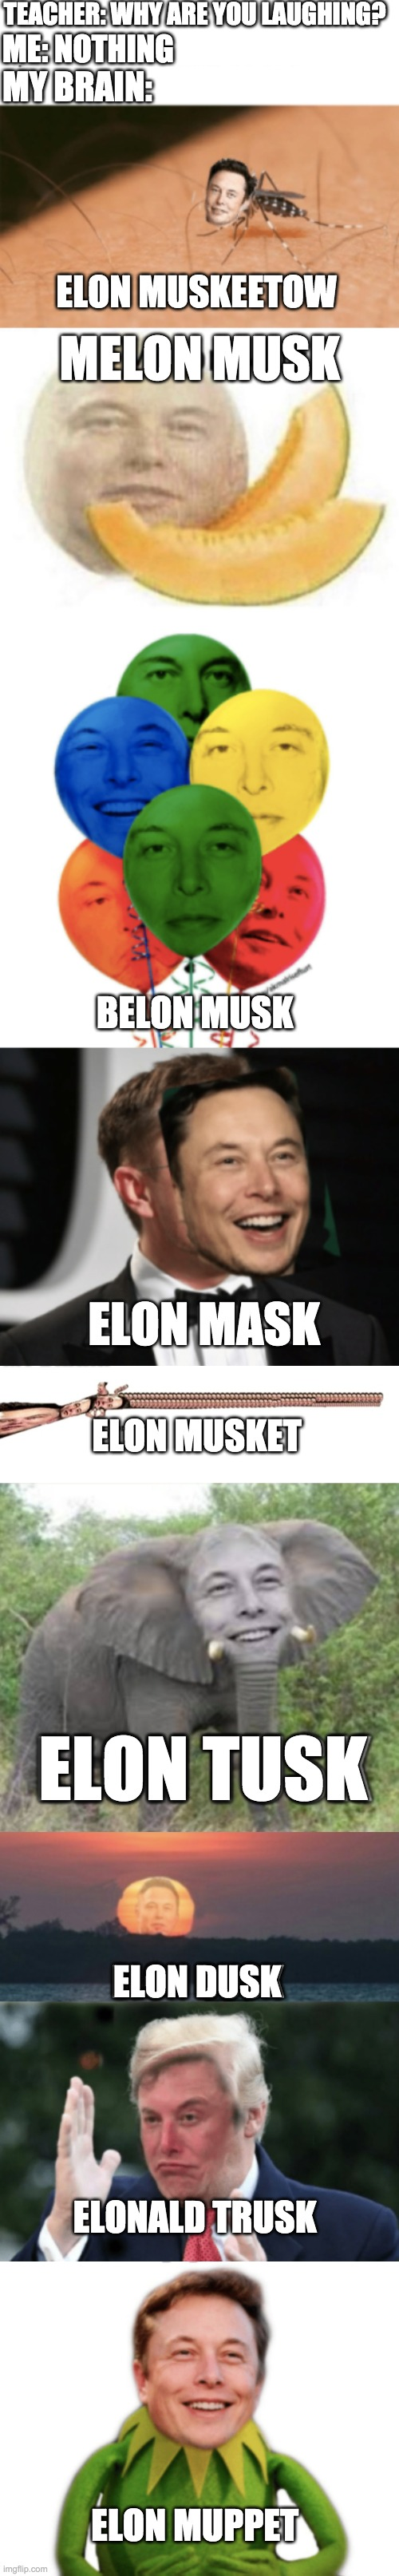 Elon Musk |  TEACHER: WHY ARE YOU LAUGHING? ME: NOTHING; MY BRAIN:; ELON MUSKEETOW; MELON MUSK; BELON MUSK; ELON MASK; ELON MUSKET; ELON TUSK; ELON DUSK; ELONALD TRUSK; ELON MUPPET | image tagged in memes,funny,elon musk,fun,front page | made w/ Imgflip meme maker